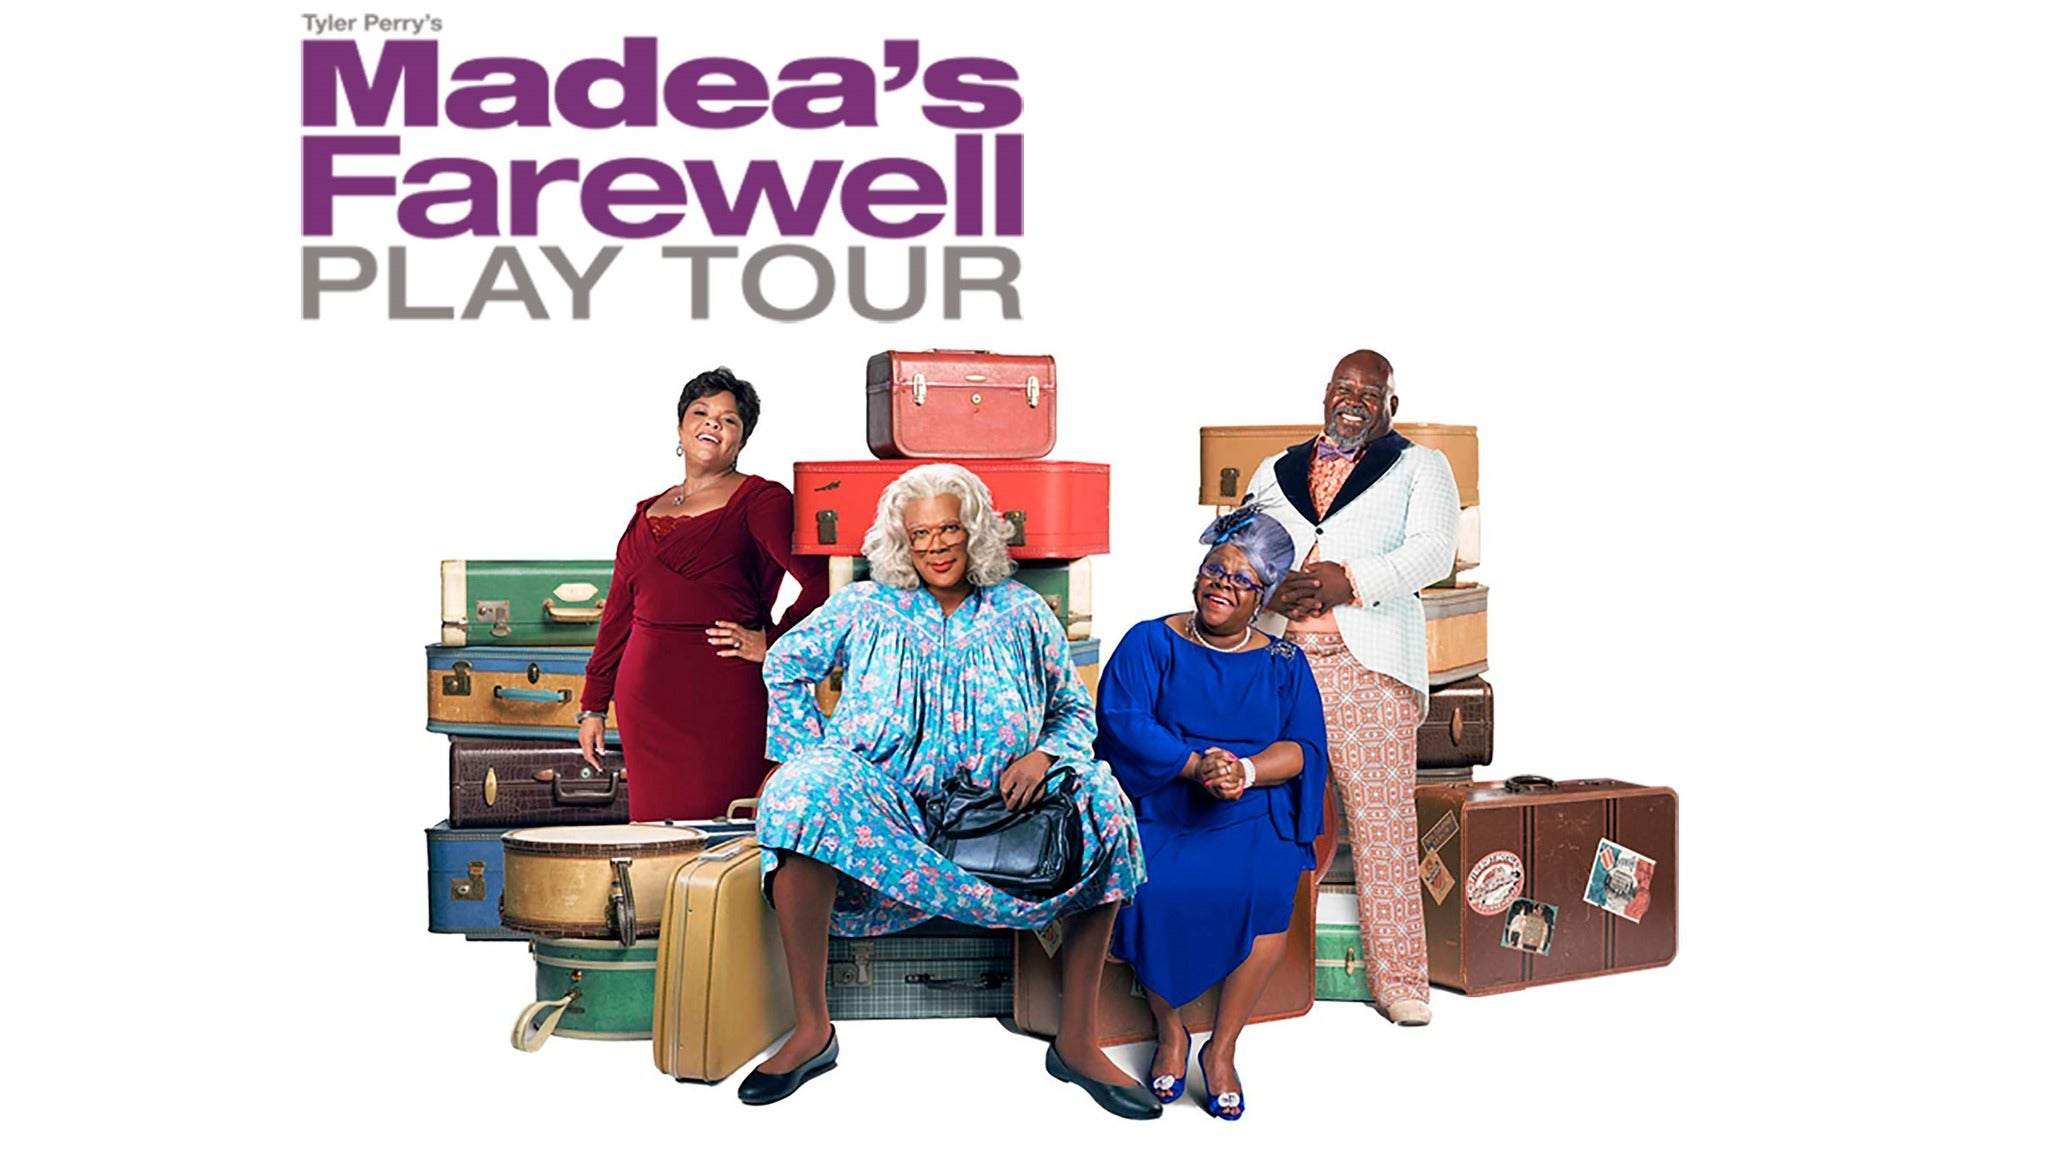 Tyler Perry's Madea's Farewell Play Tour at Dolby Theatre